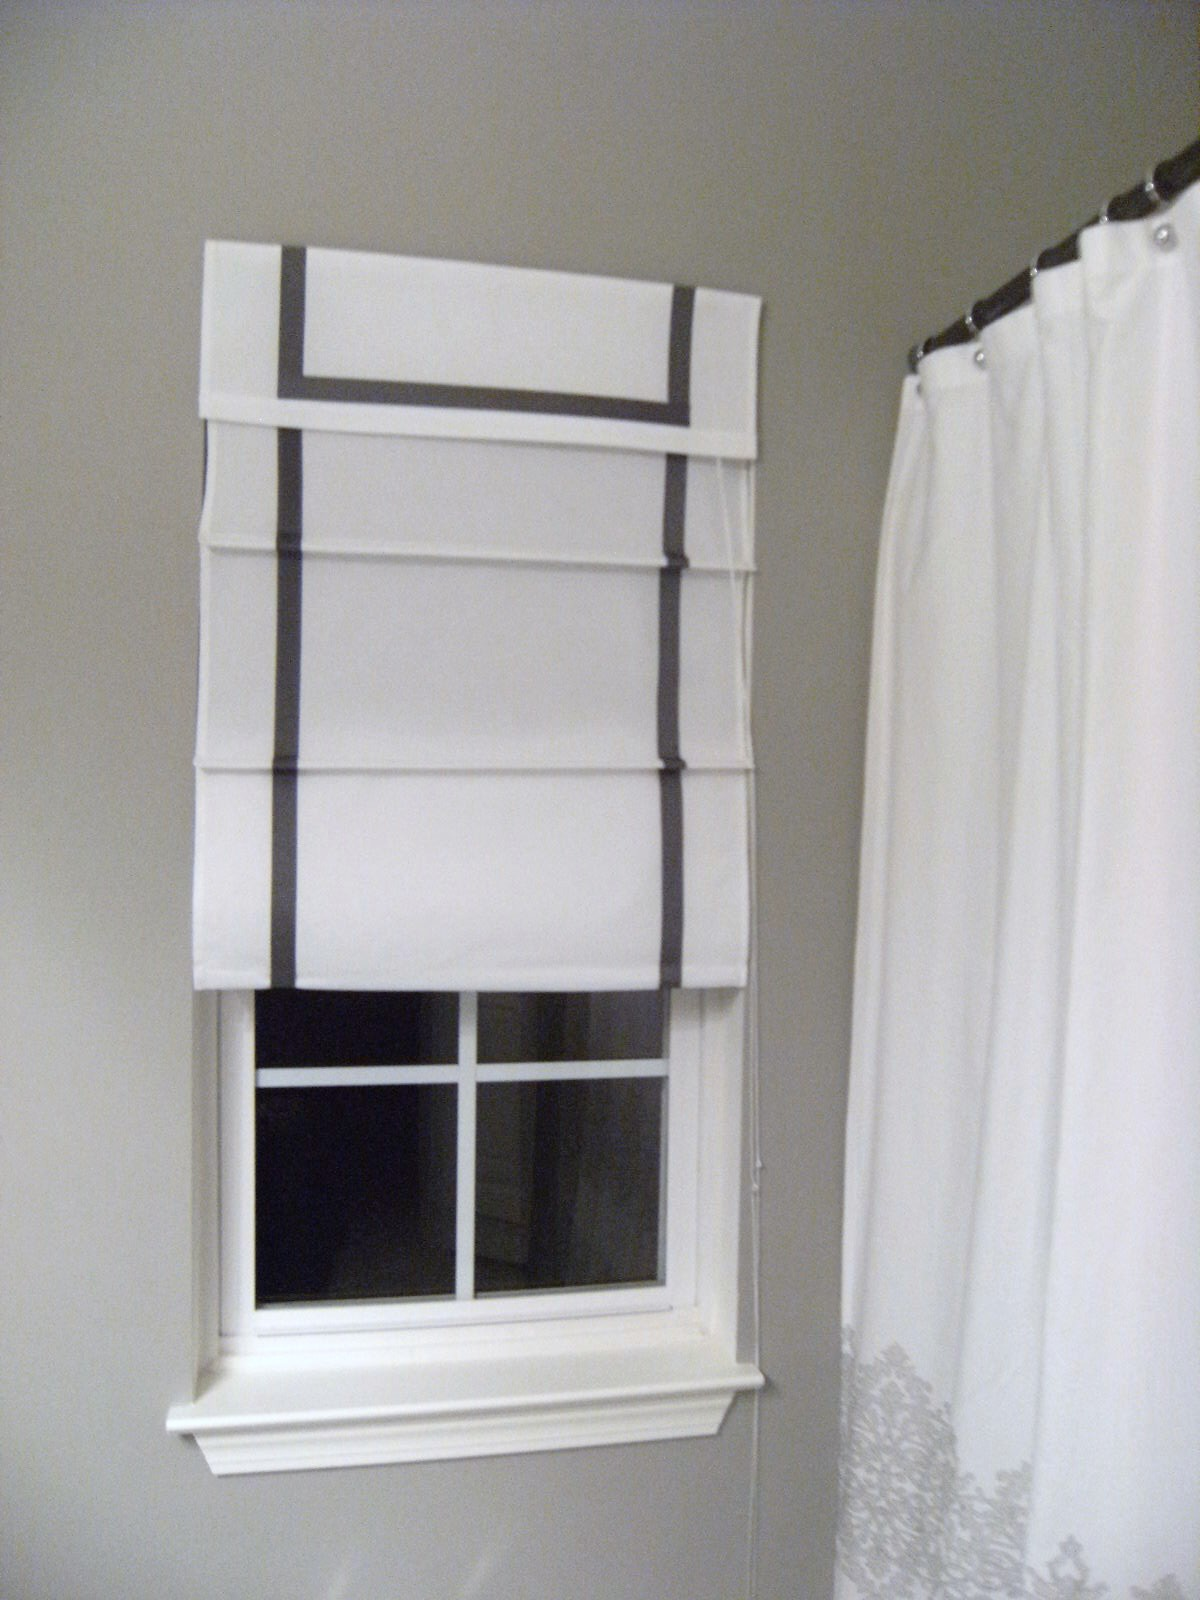 Southgate Residential Diy Ribbon Edged Roman Shades